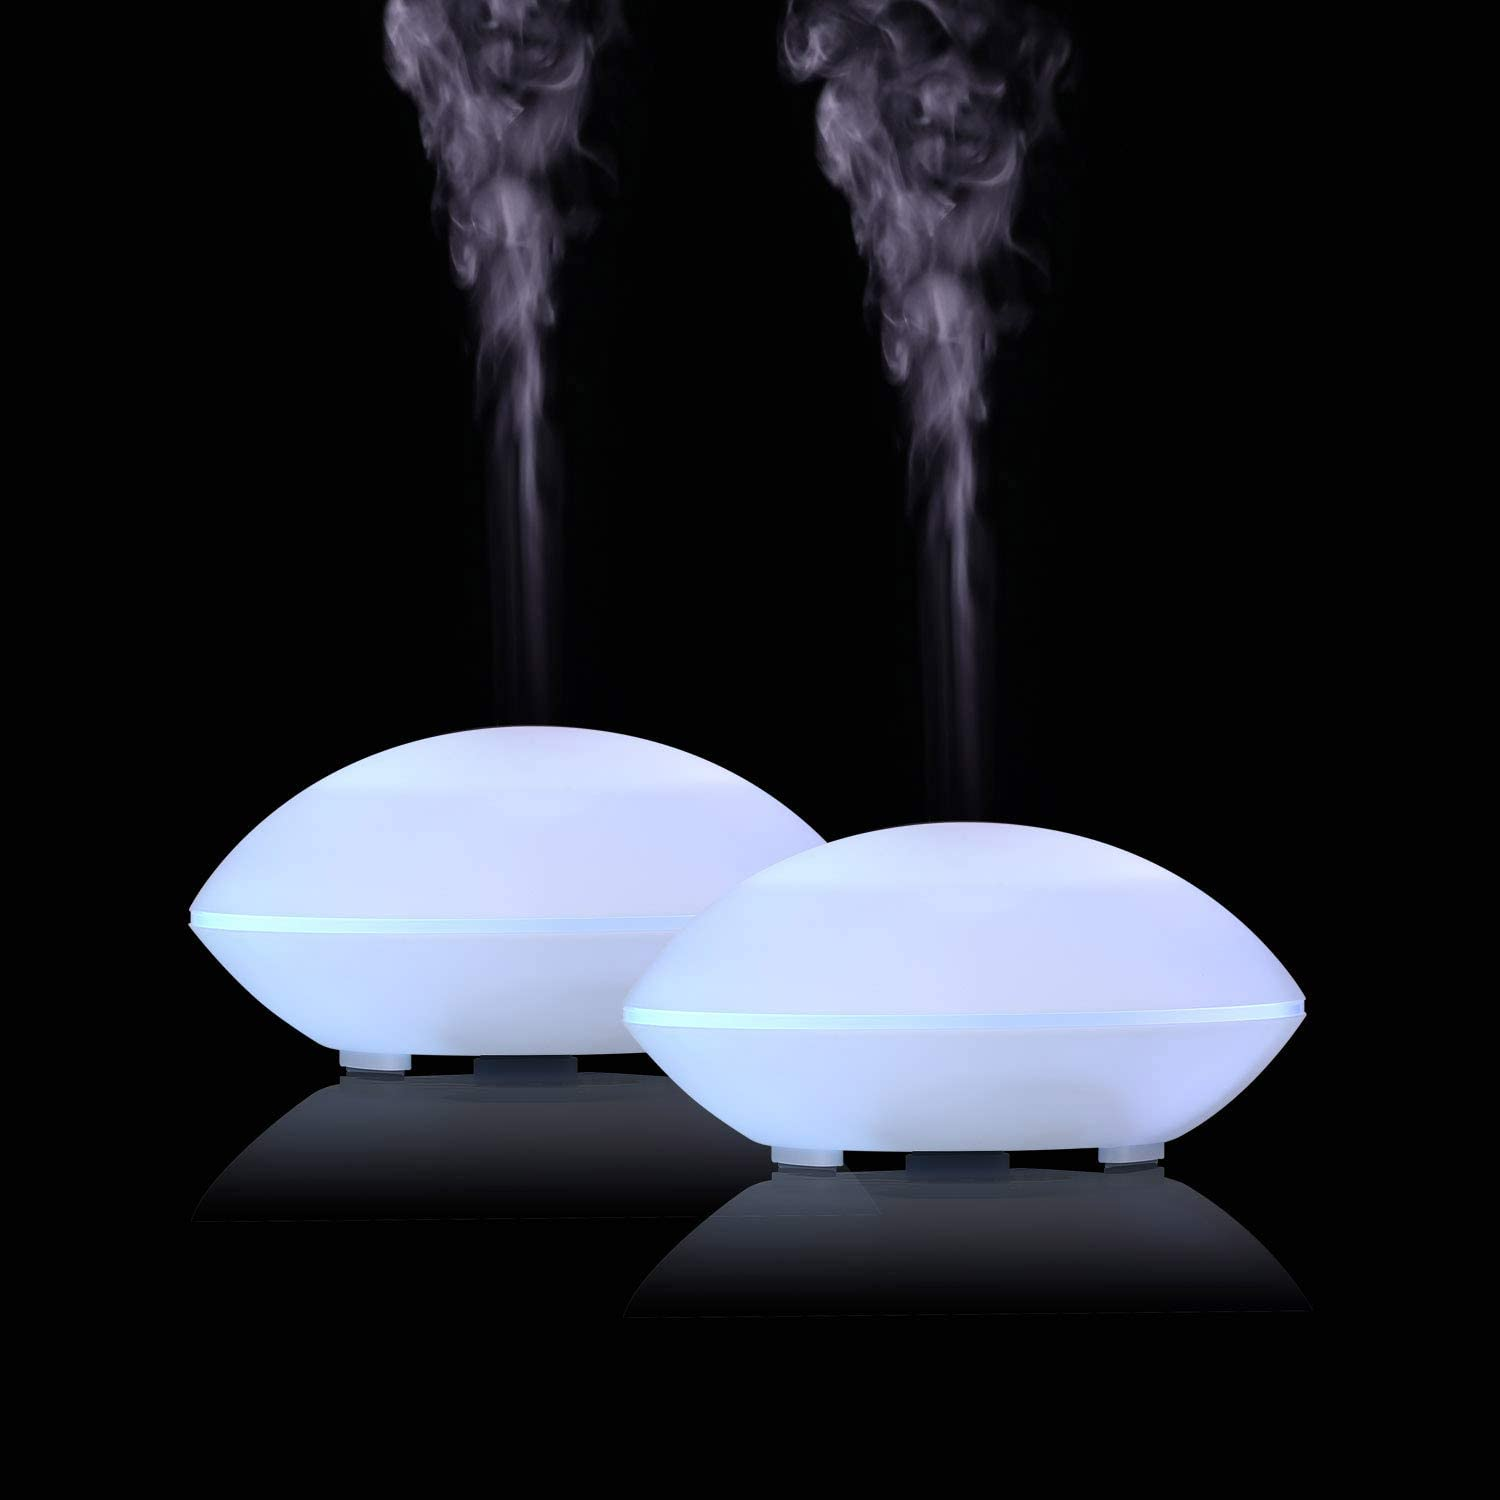 Details about  /Home Low Noise Ultrasonic Mini Air Humidifier 200ML Aroma Essential Oil Diffuser